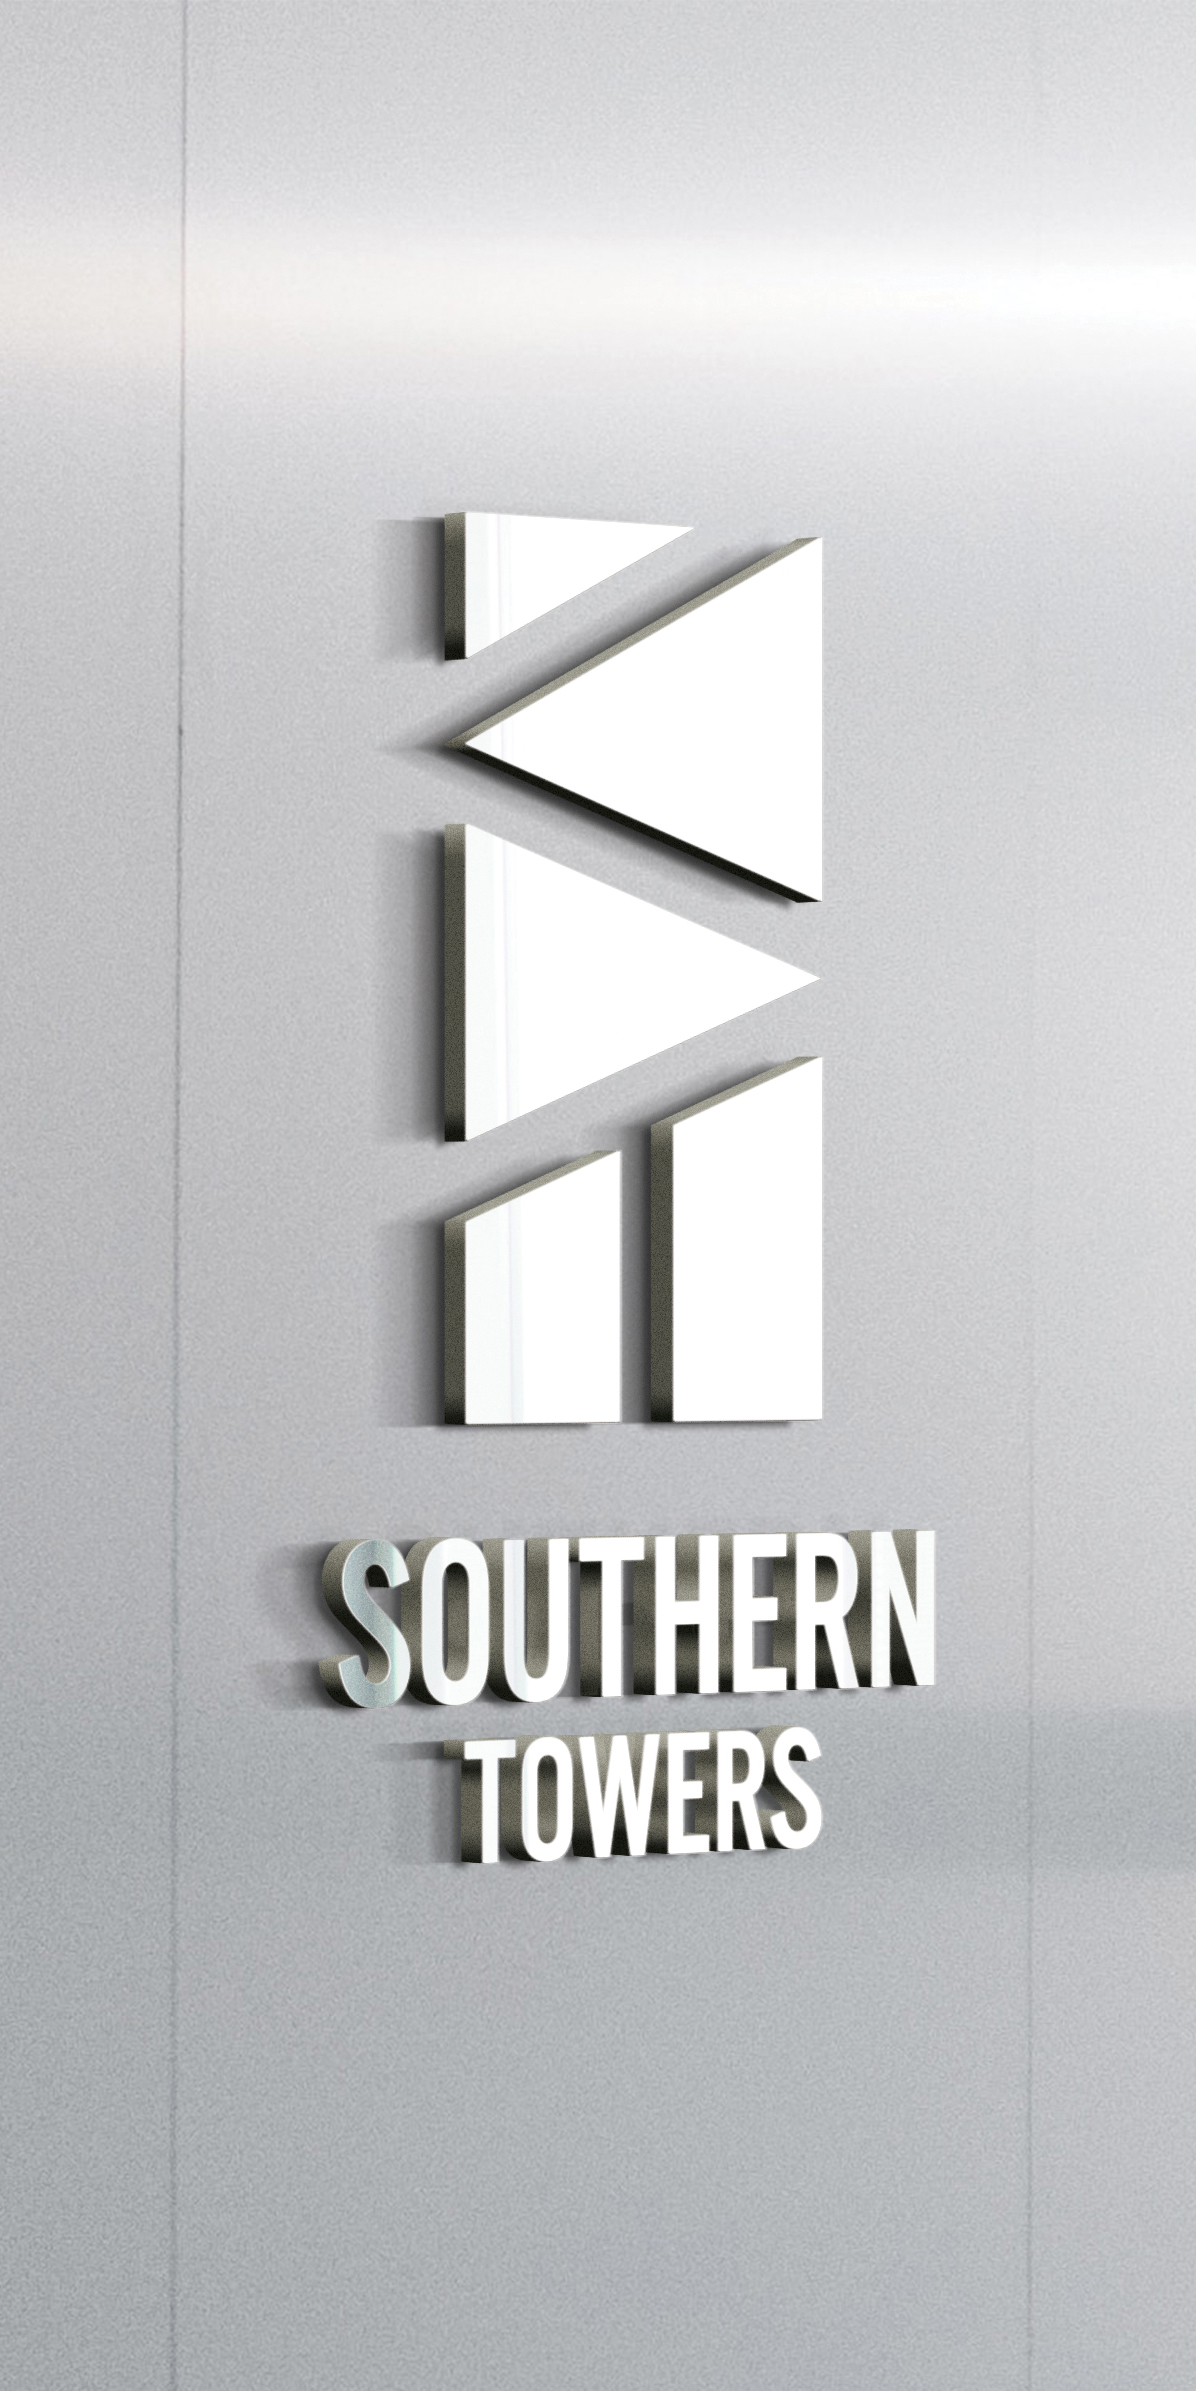 southern_towers_indoor_sign_16x8.jpg